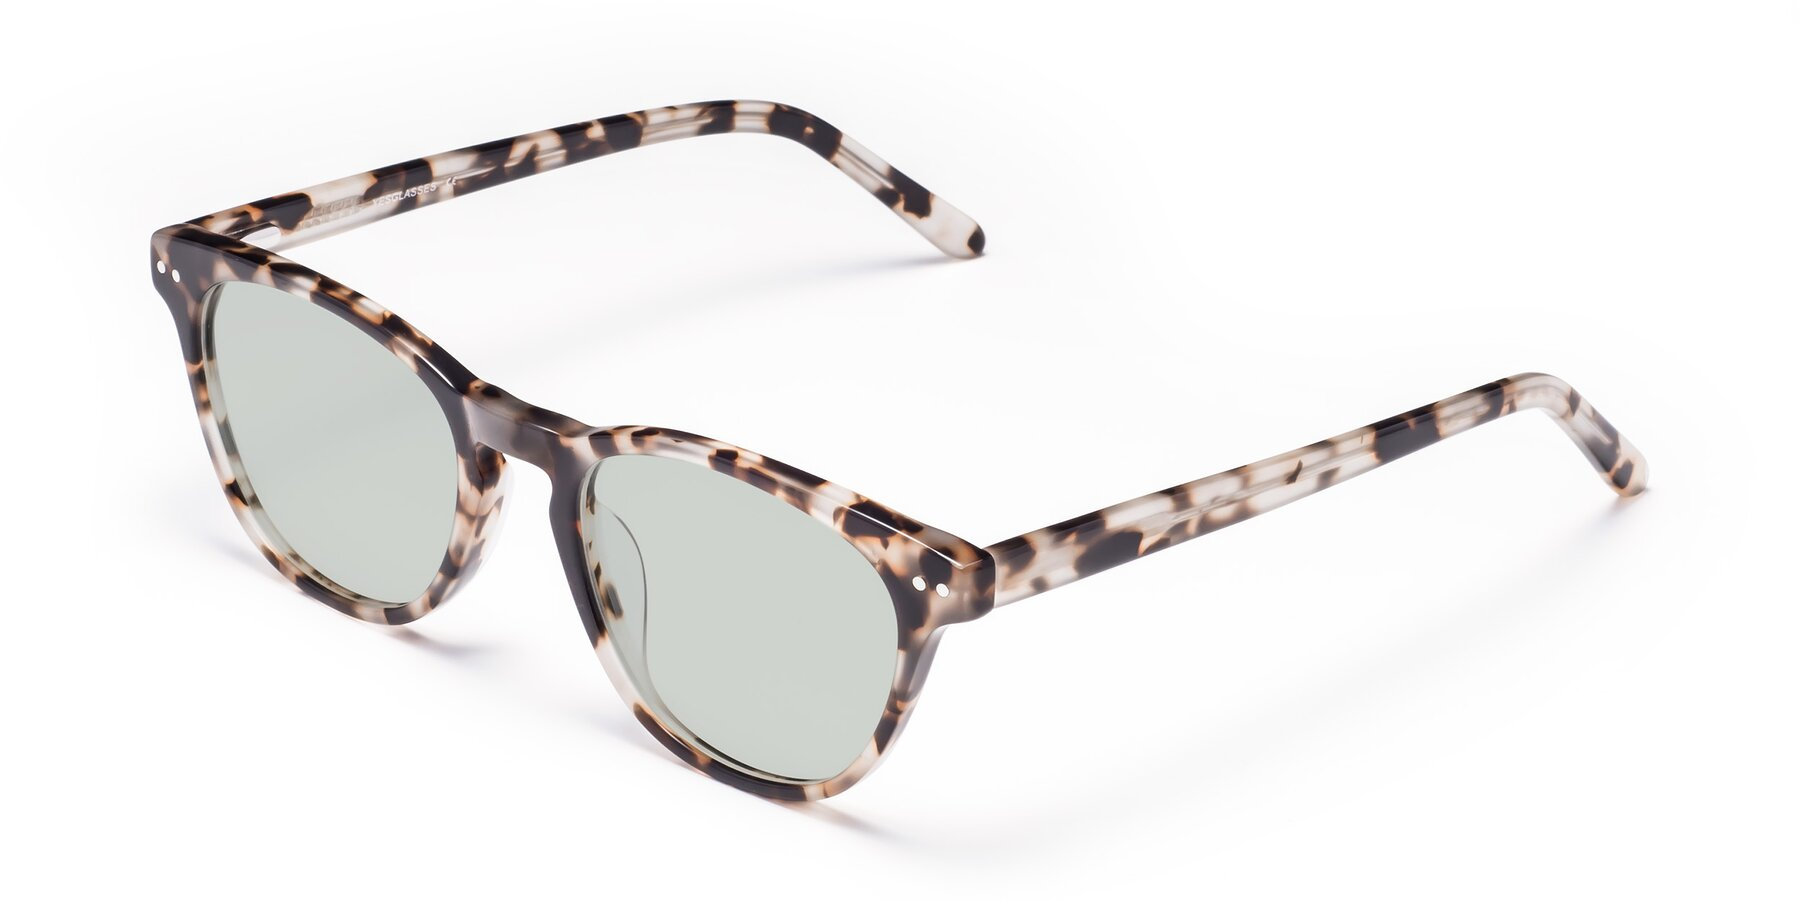 Angle of Blaze in Tortoise with Light Green Tinted Lenses